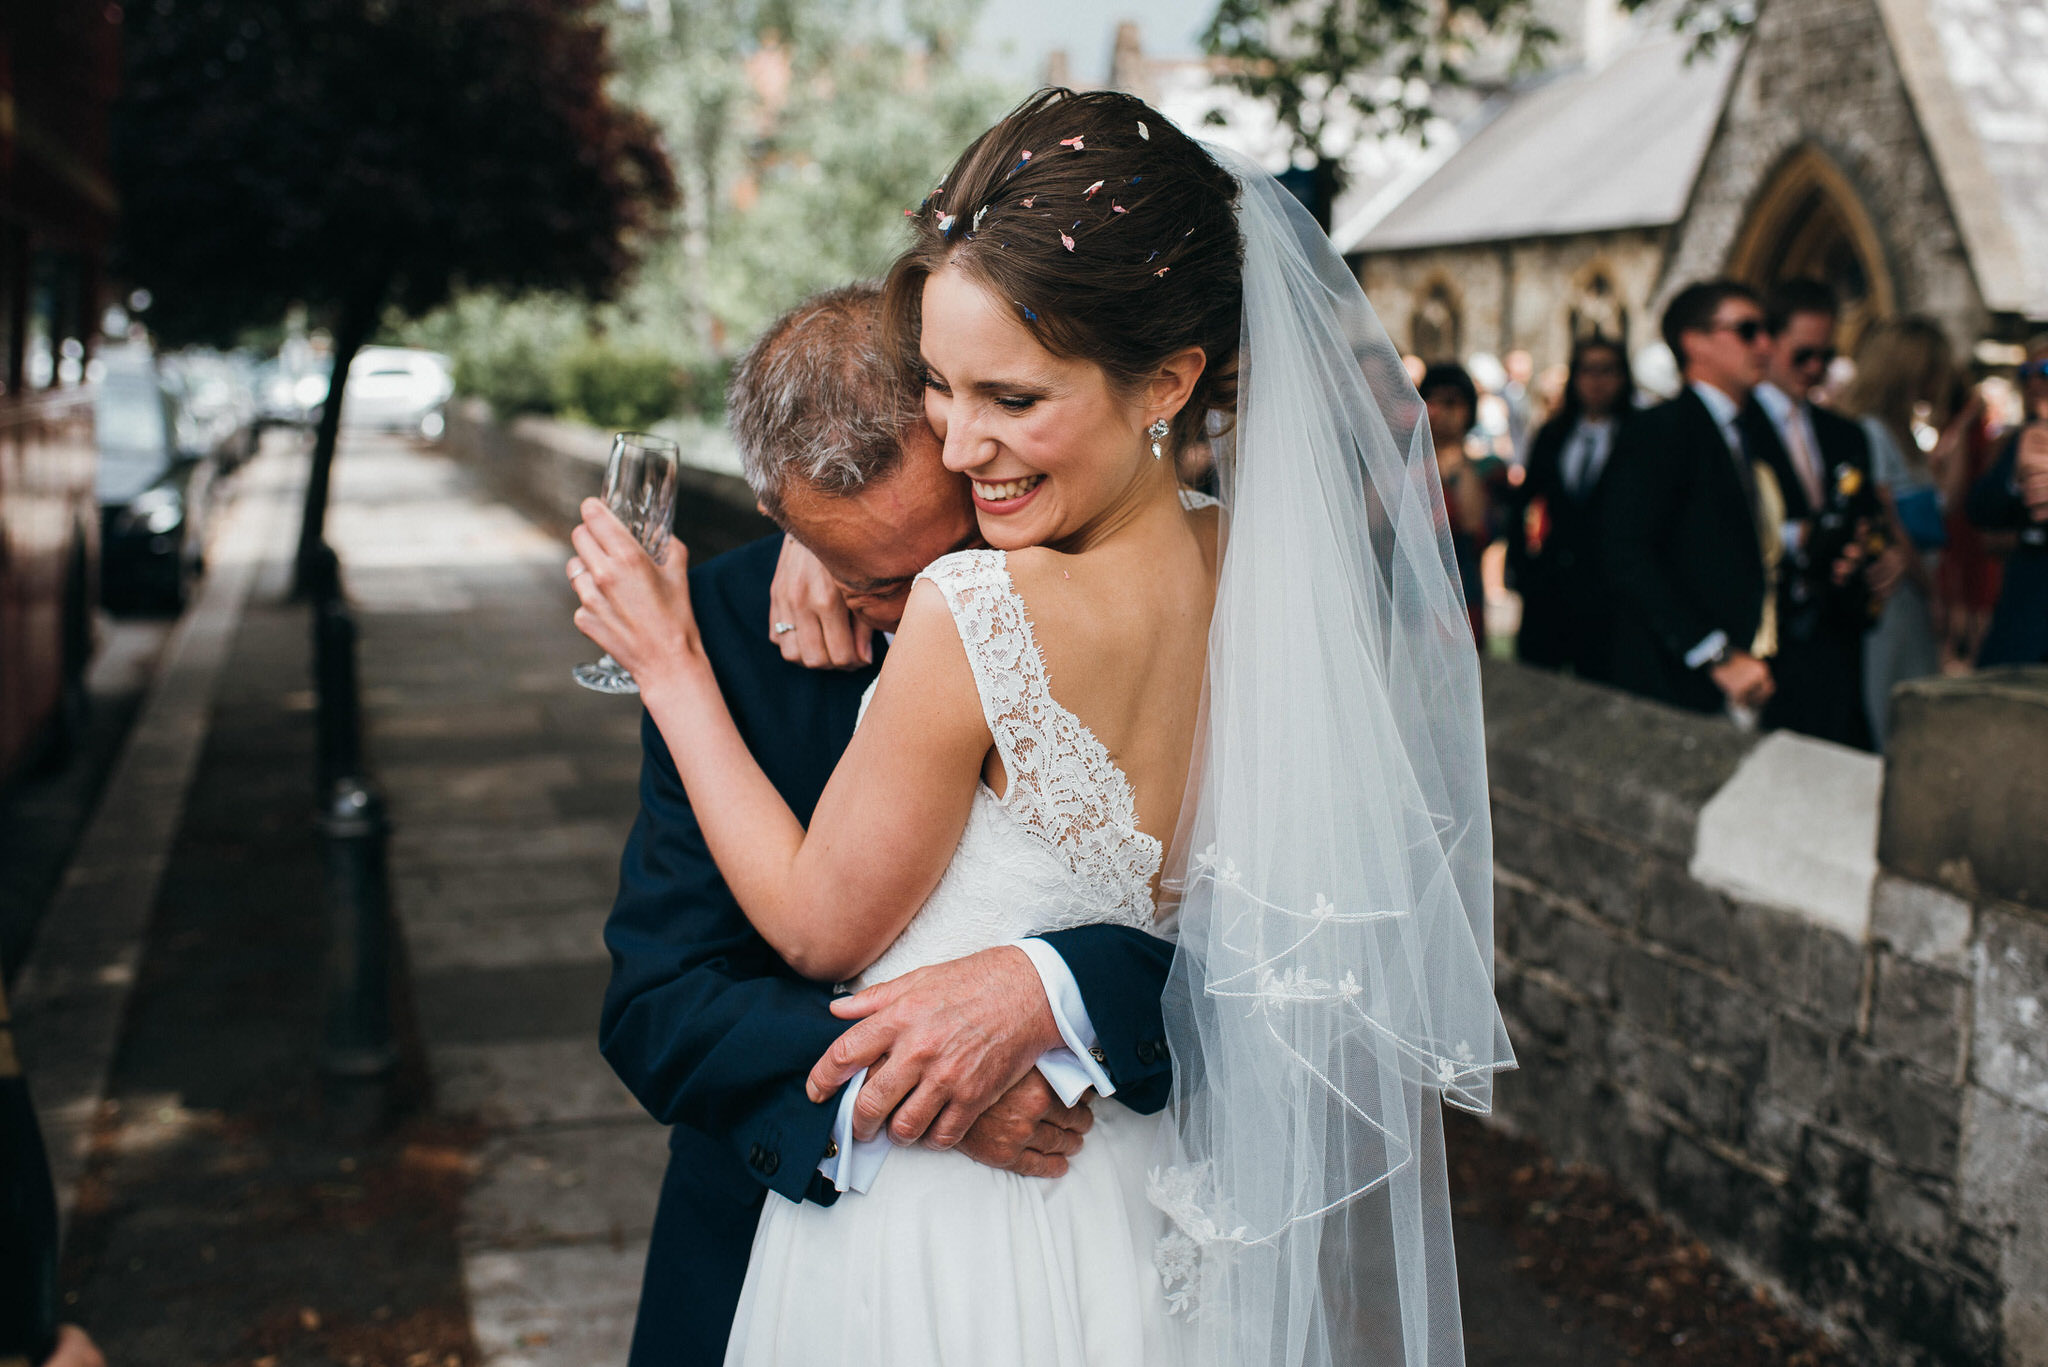 big hug from father of bride